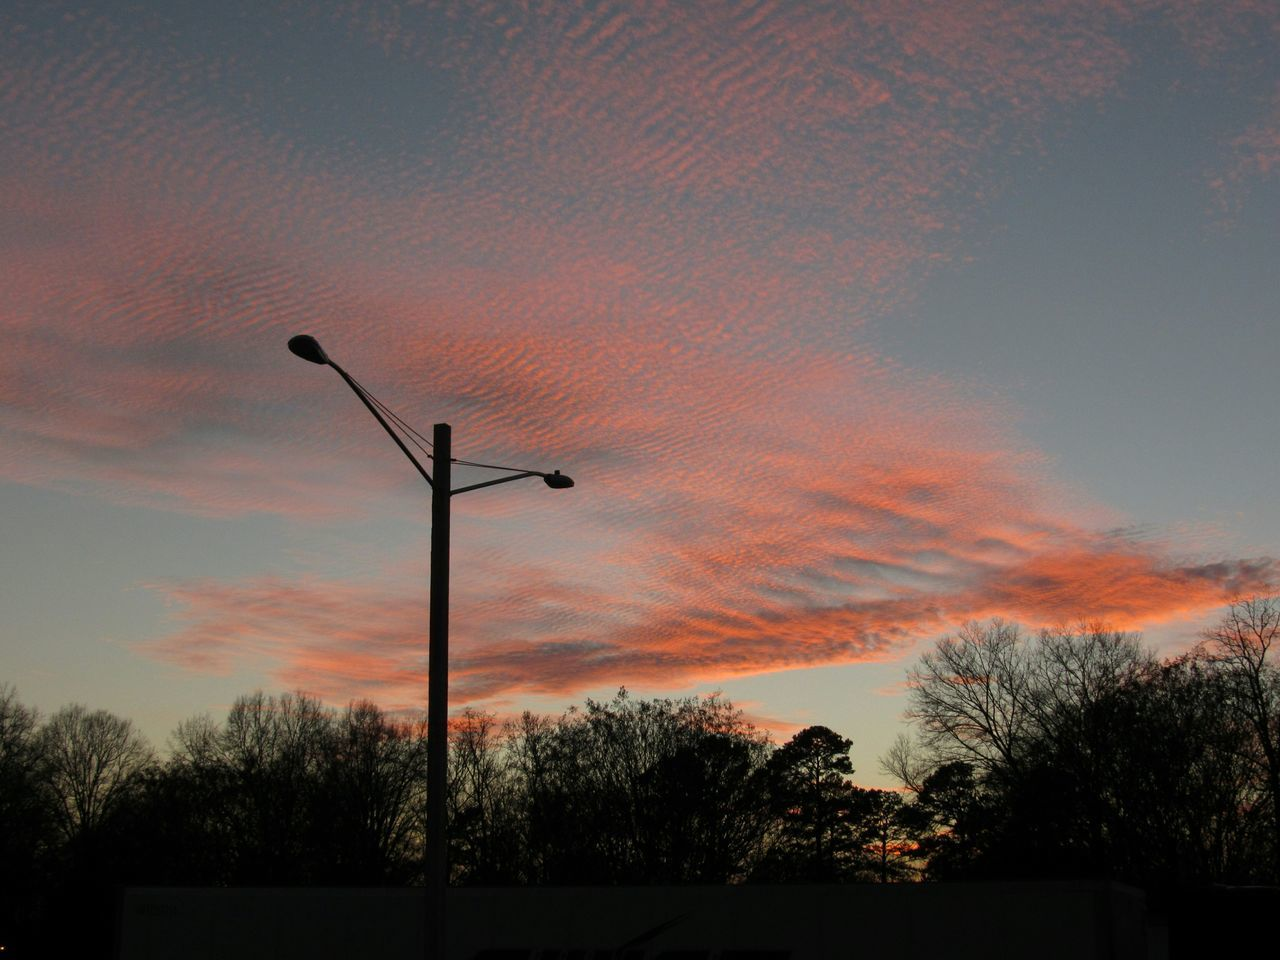 Low Angle View Of Silhouette Street Light And Trees Against Sky During Sunset